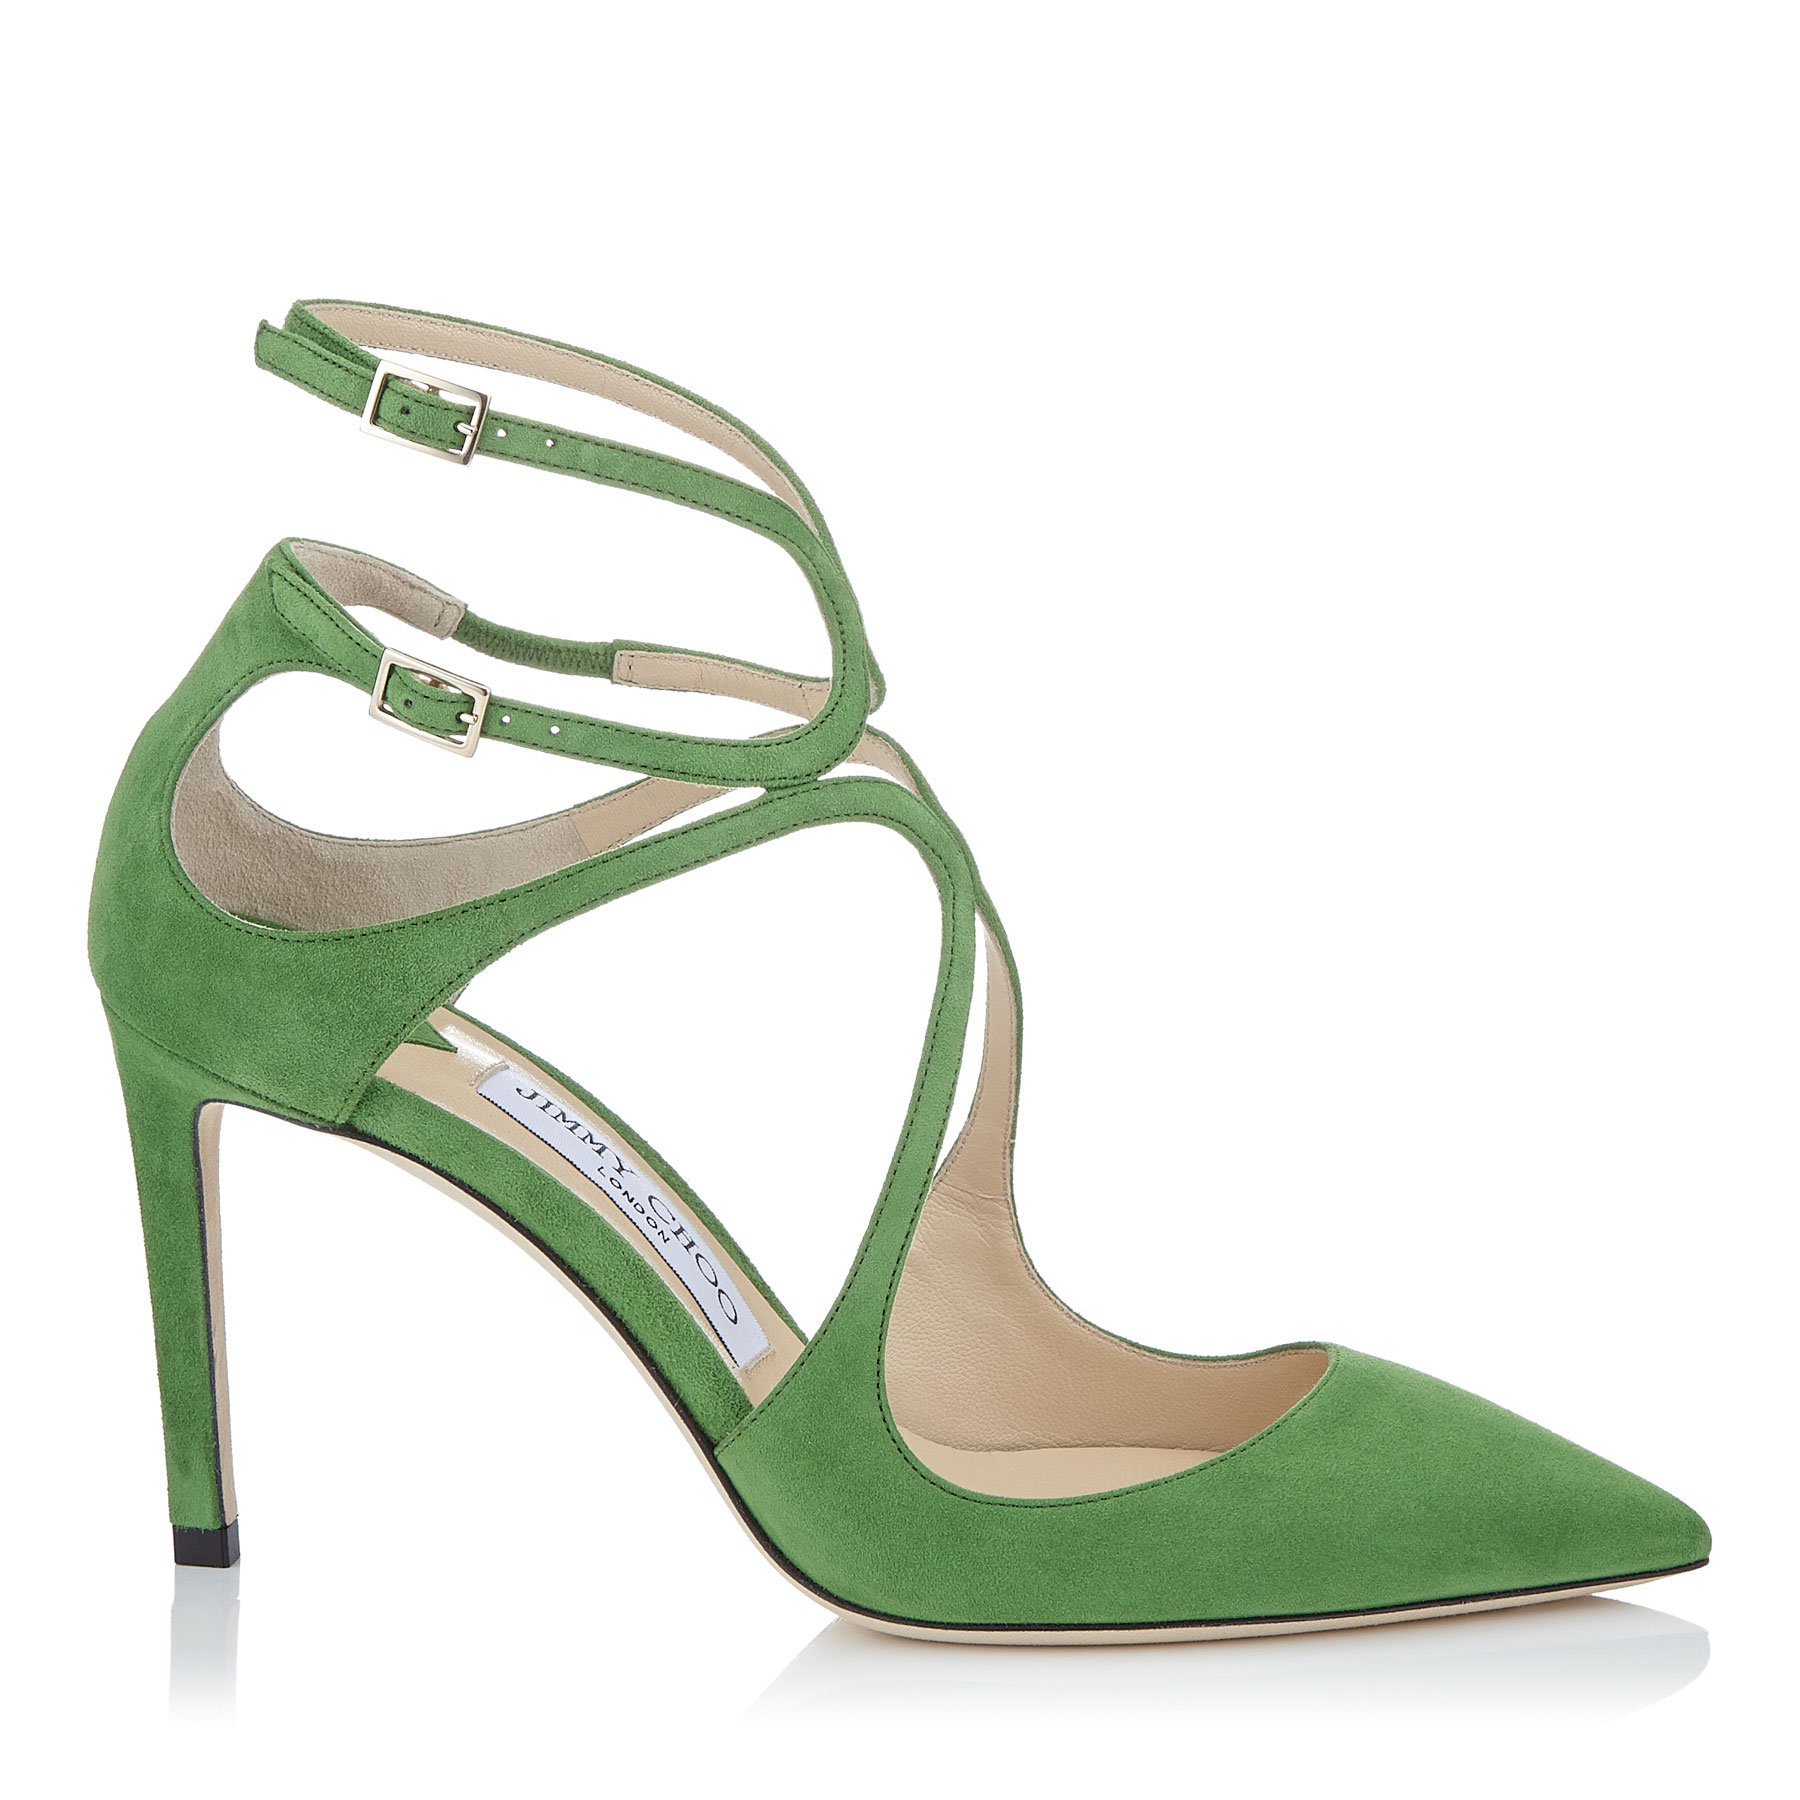 LANCER 85 Lime Suede Pointy Toe Pumps by Jimmy Choo